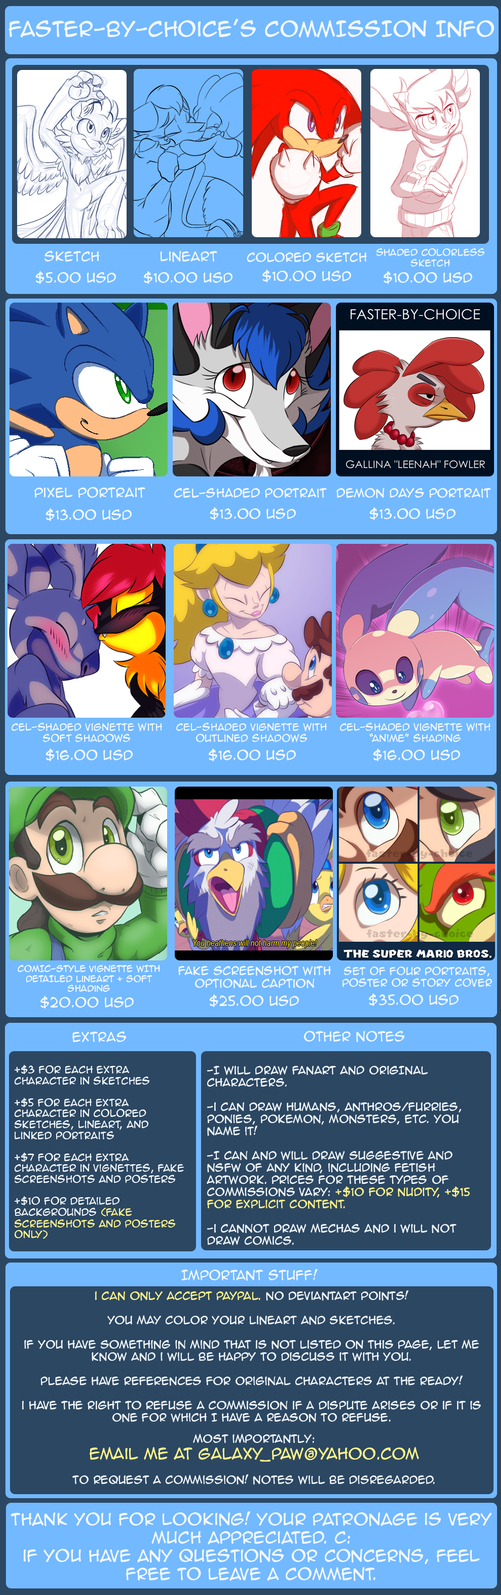 2014 Commission Chart by faster-by-choice